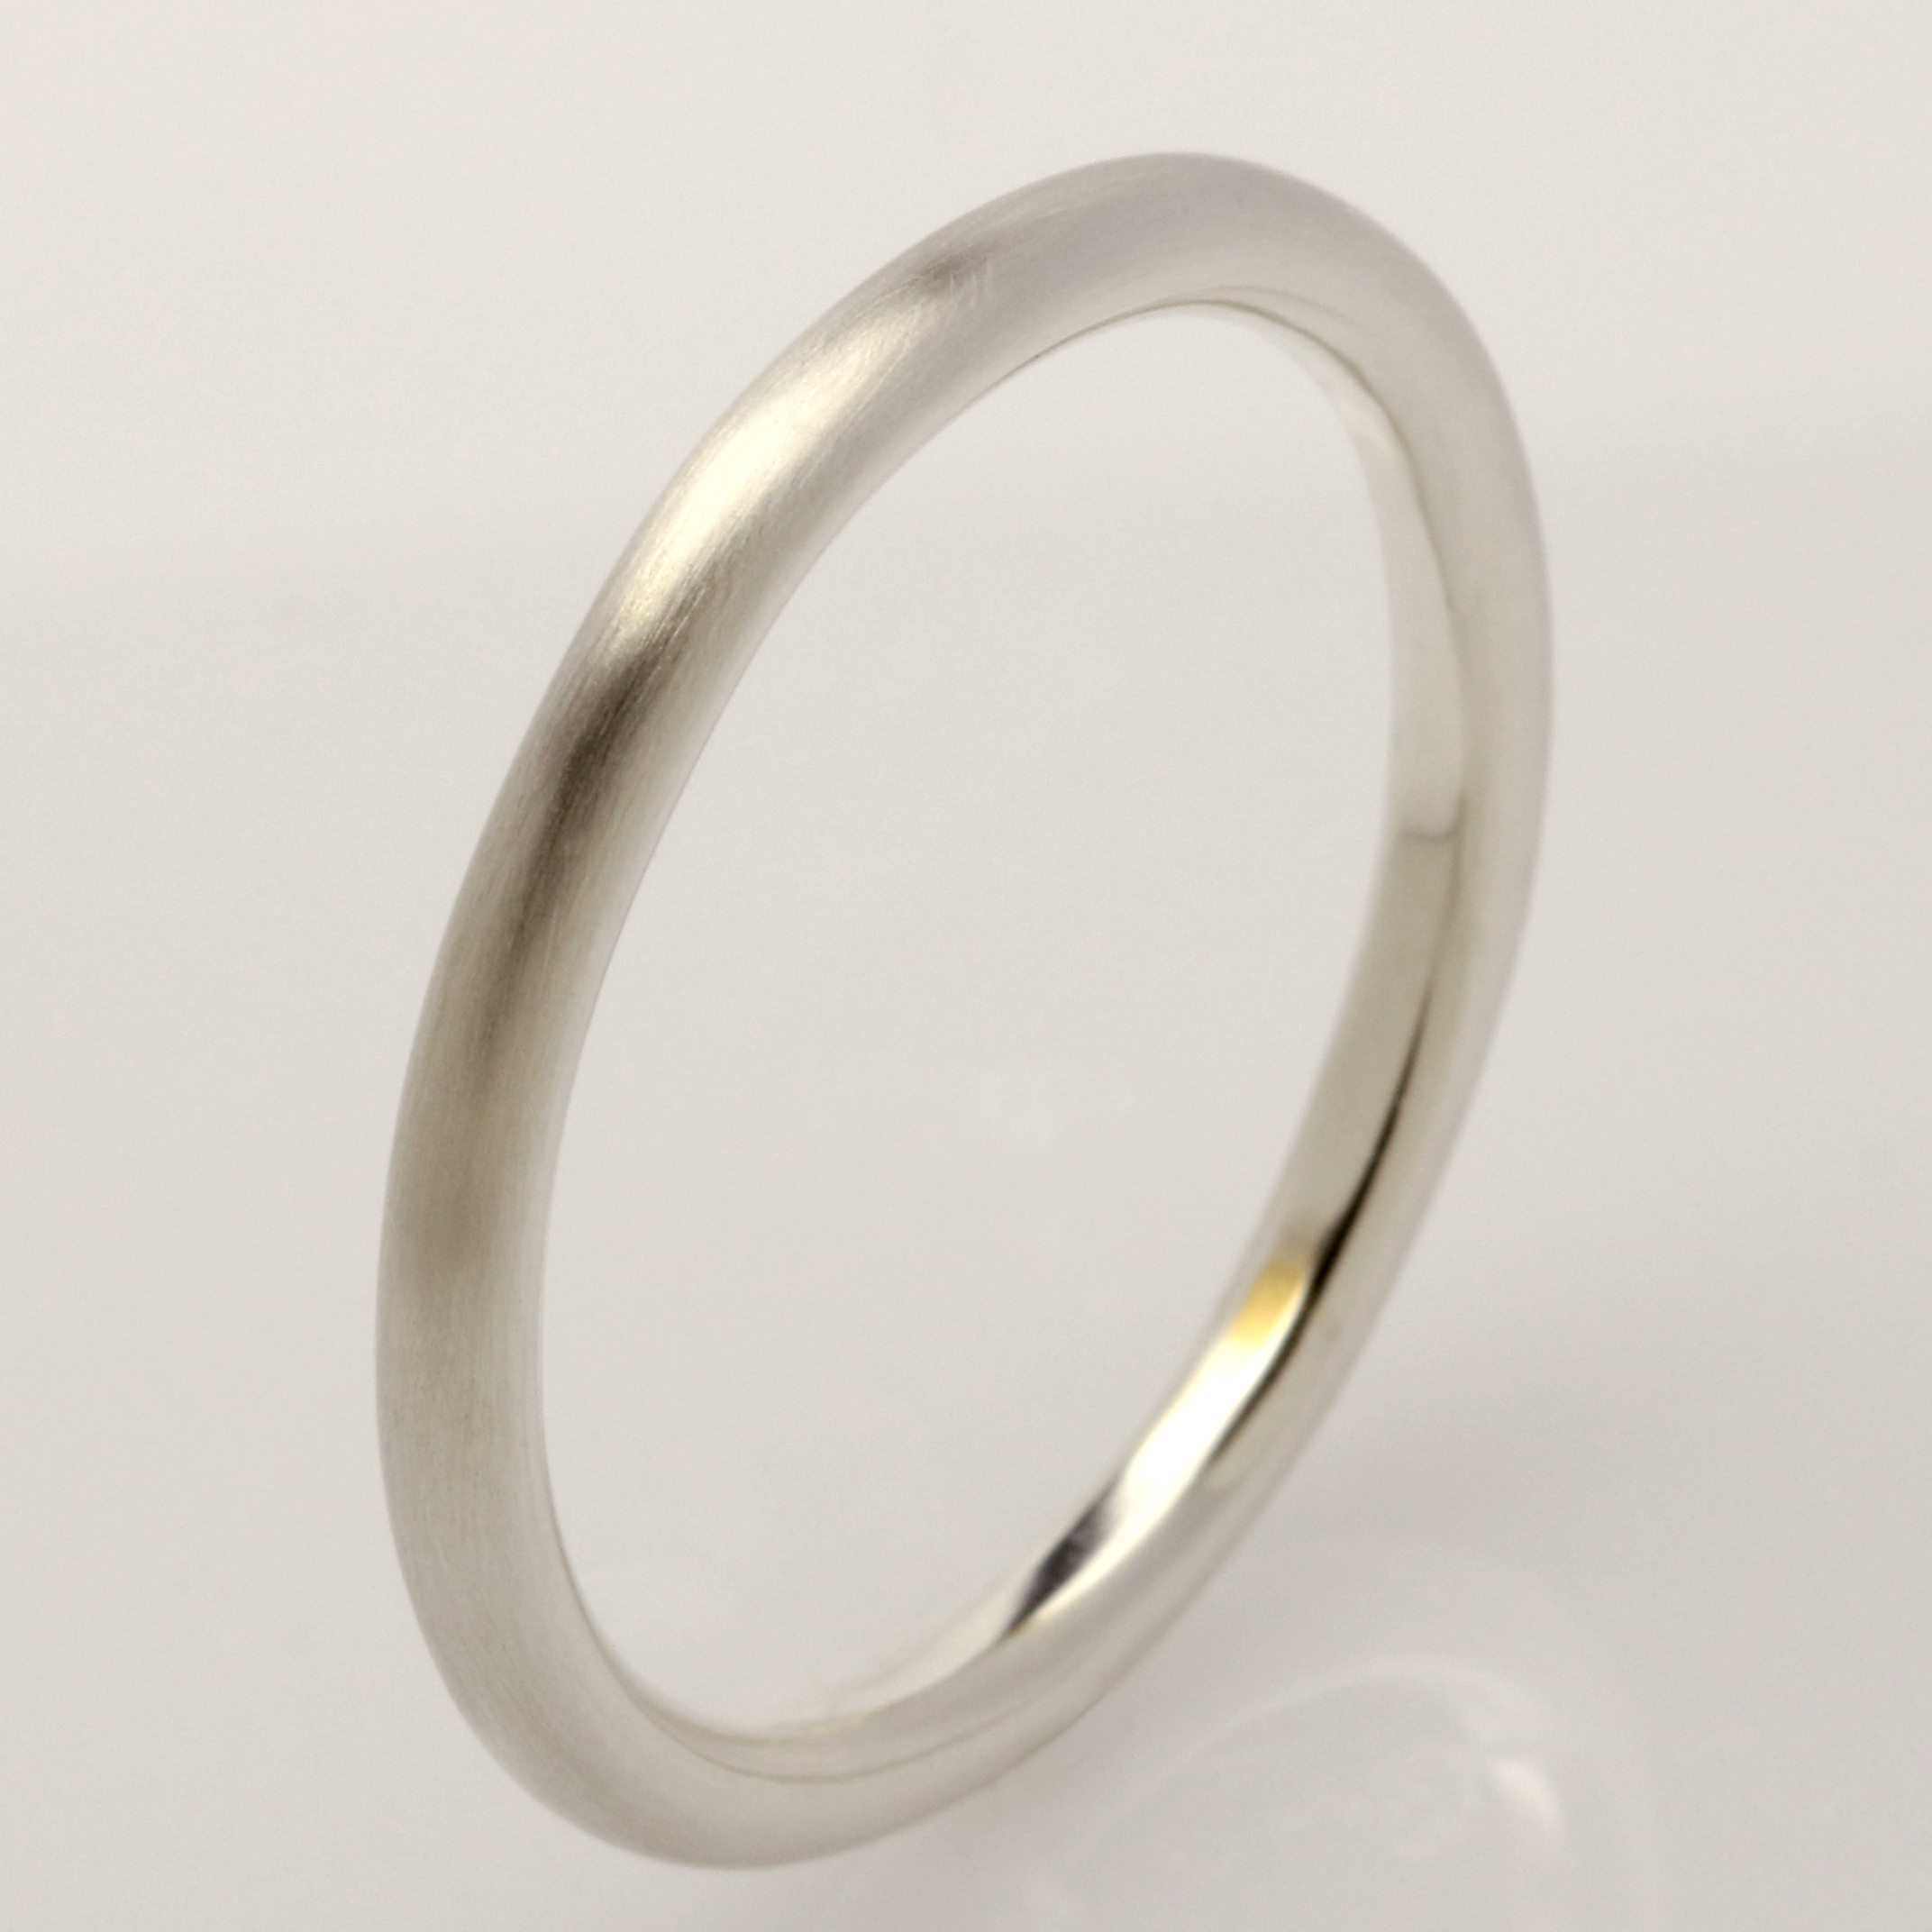 Handmade 9ct white gold round mens wedding ring